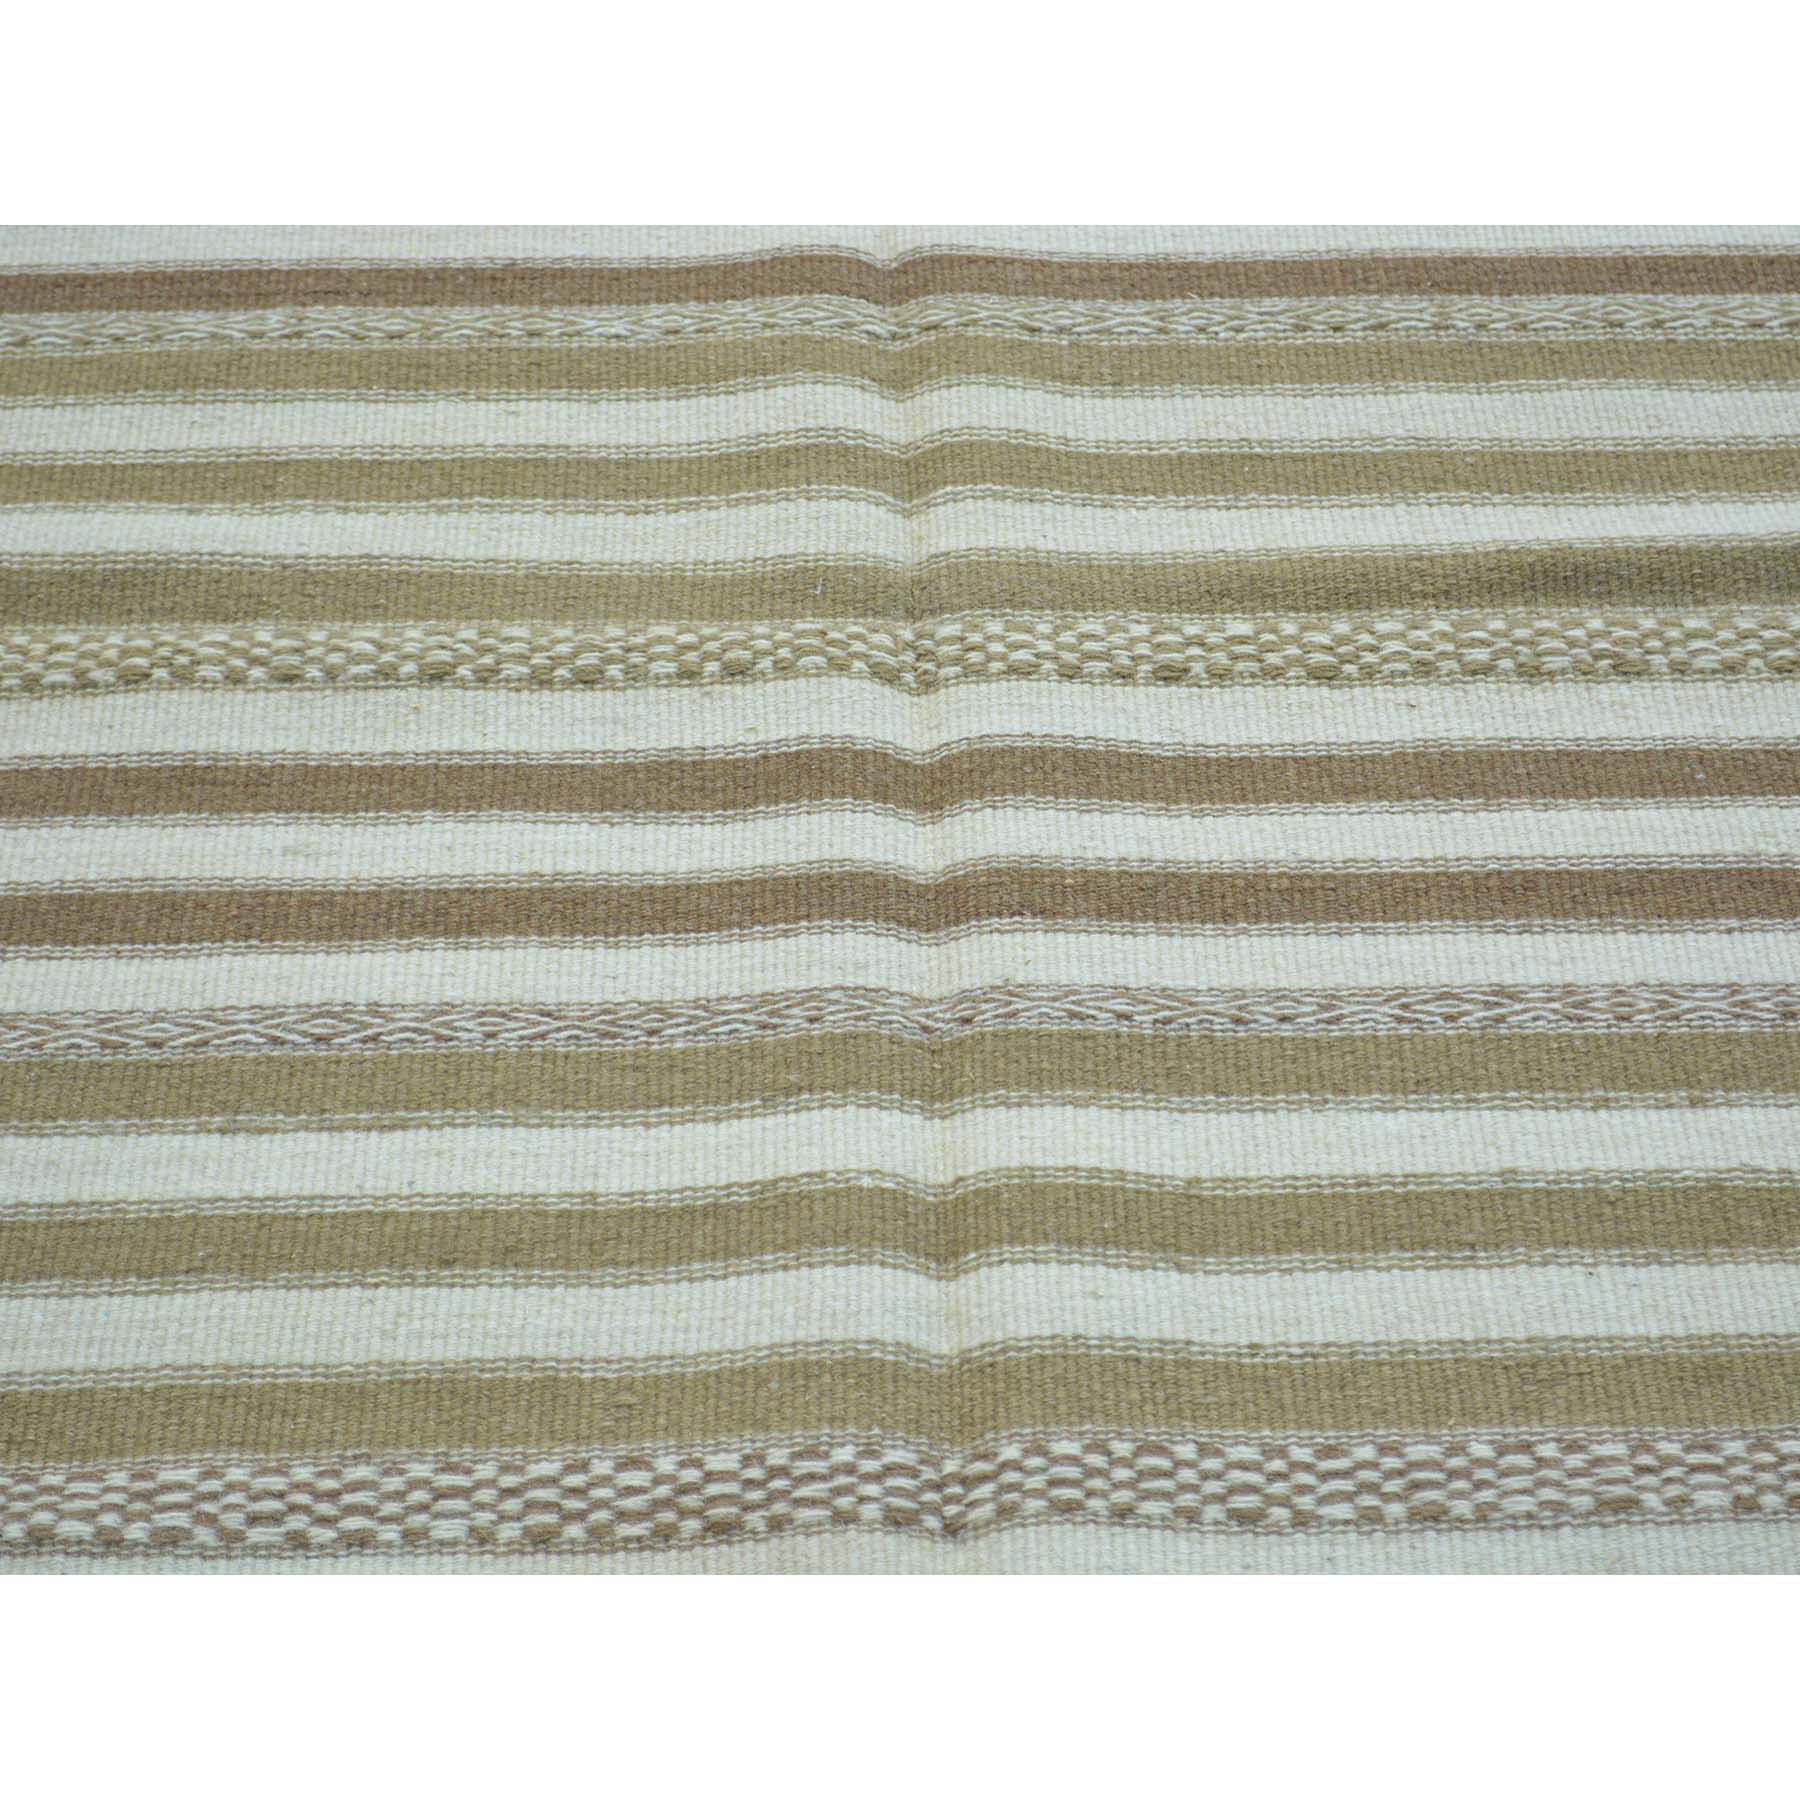 3-10 x5-10  Hand Woven Striped Durie Kilim Pure Wool Flat Weave Rug